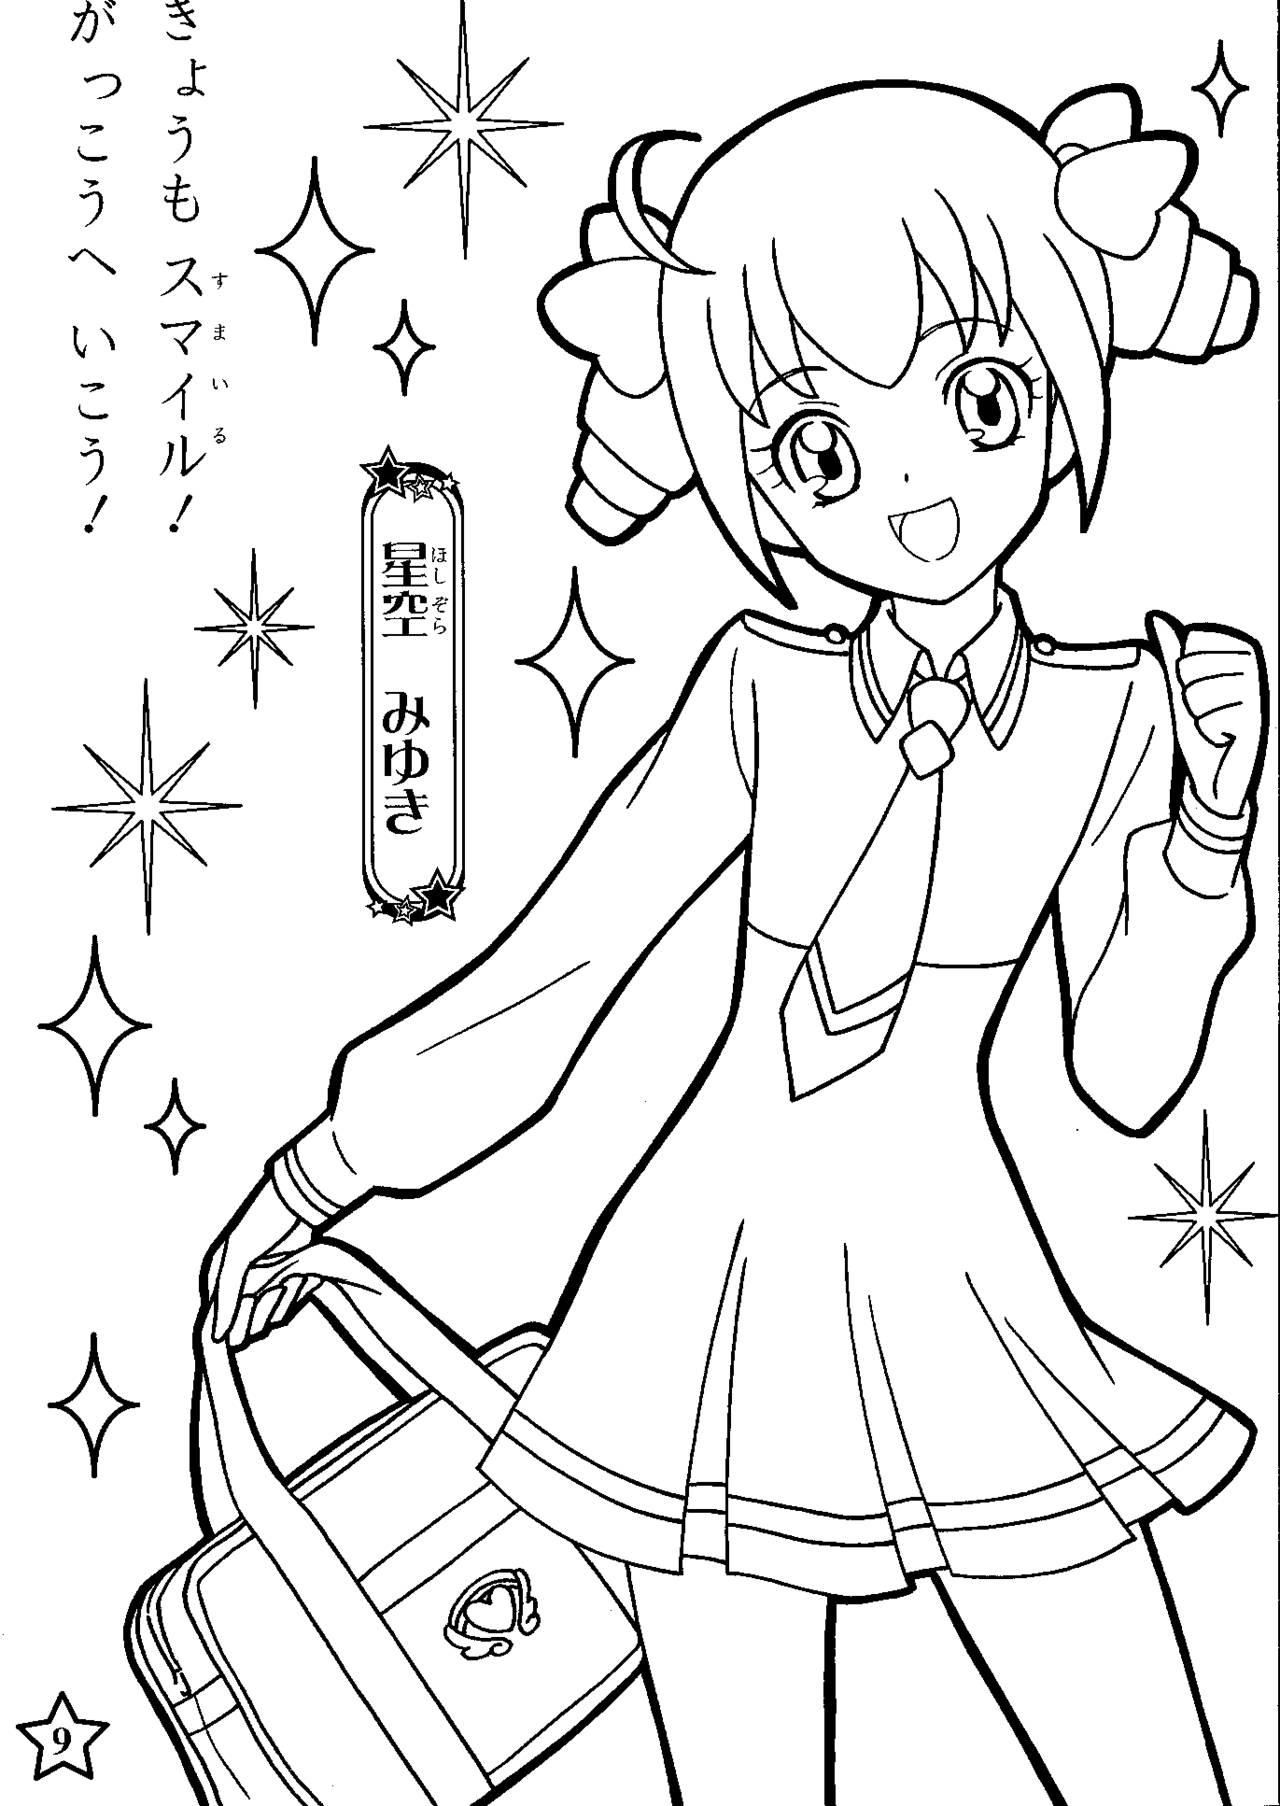 Coloring Pages Animation Coloring Pages coloring page zerochan anime image board 4 fav hoshizora miyuki